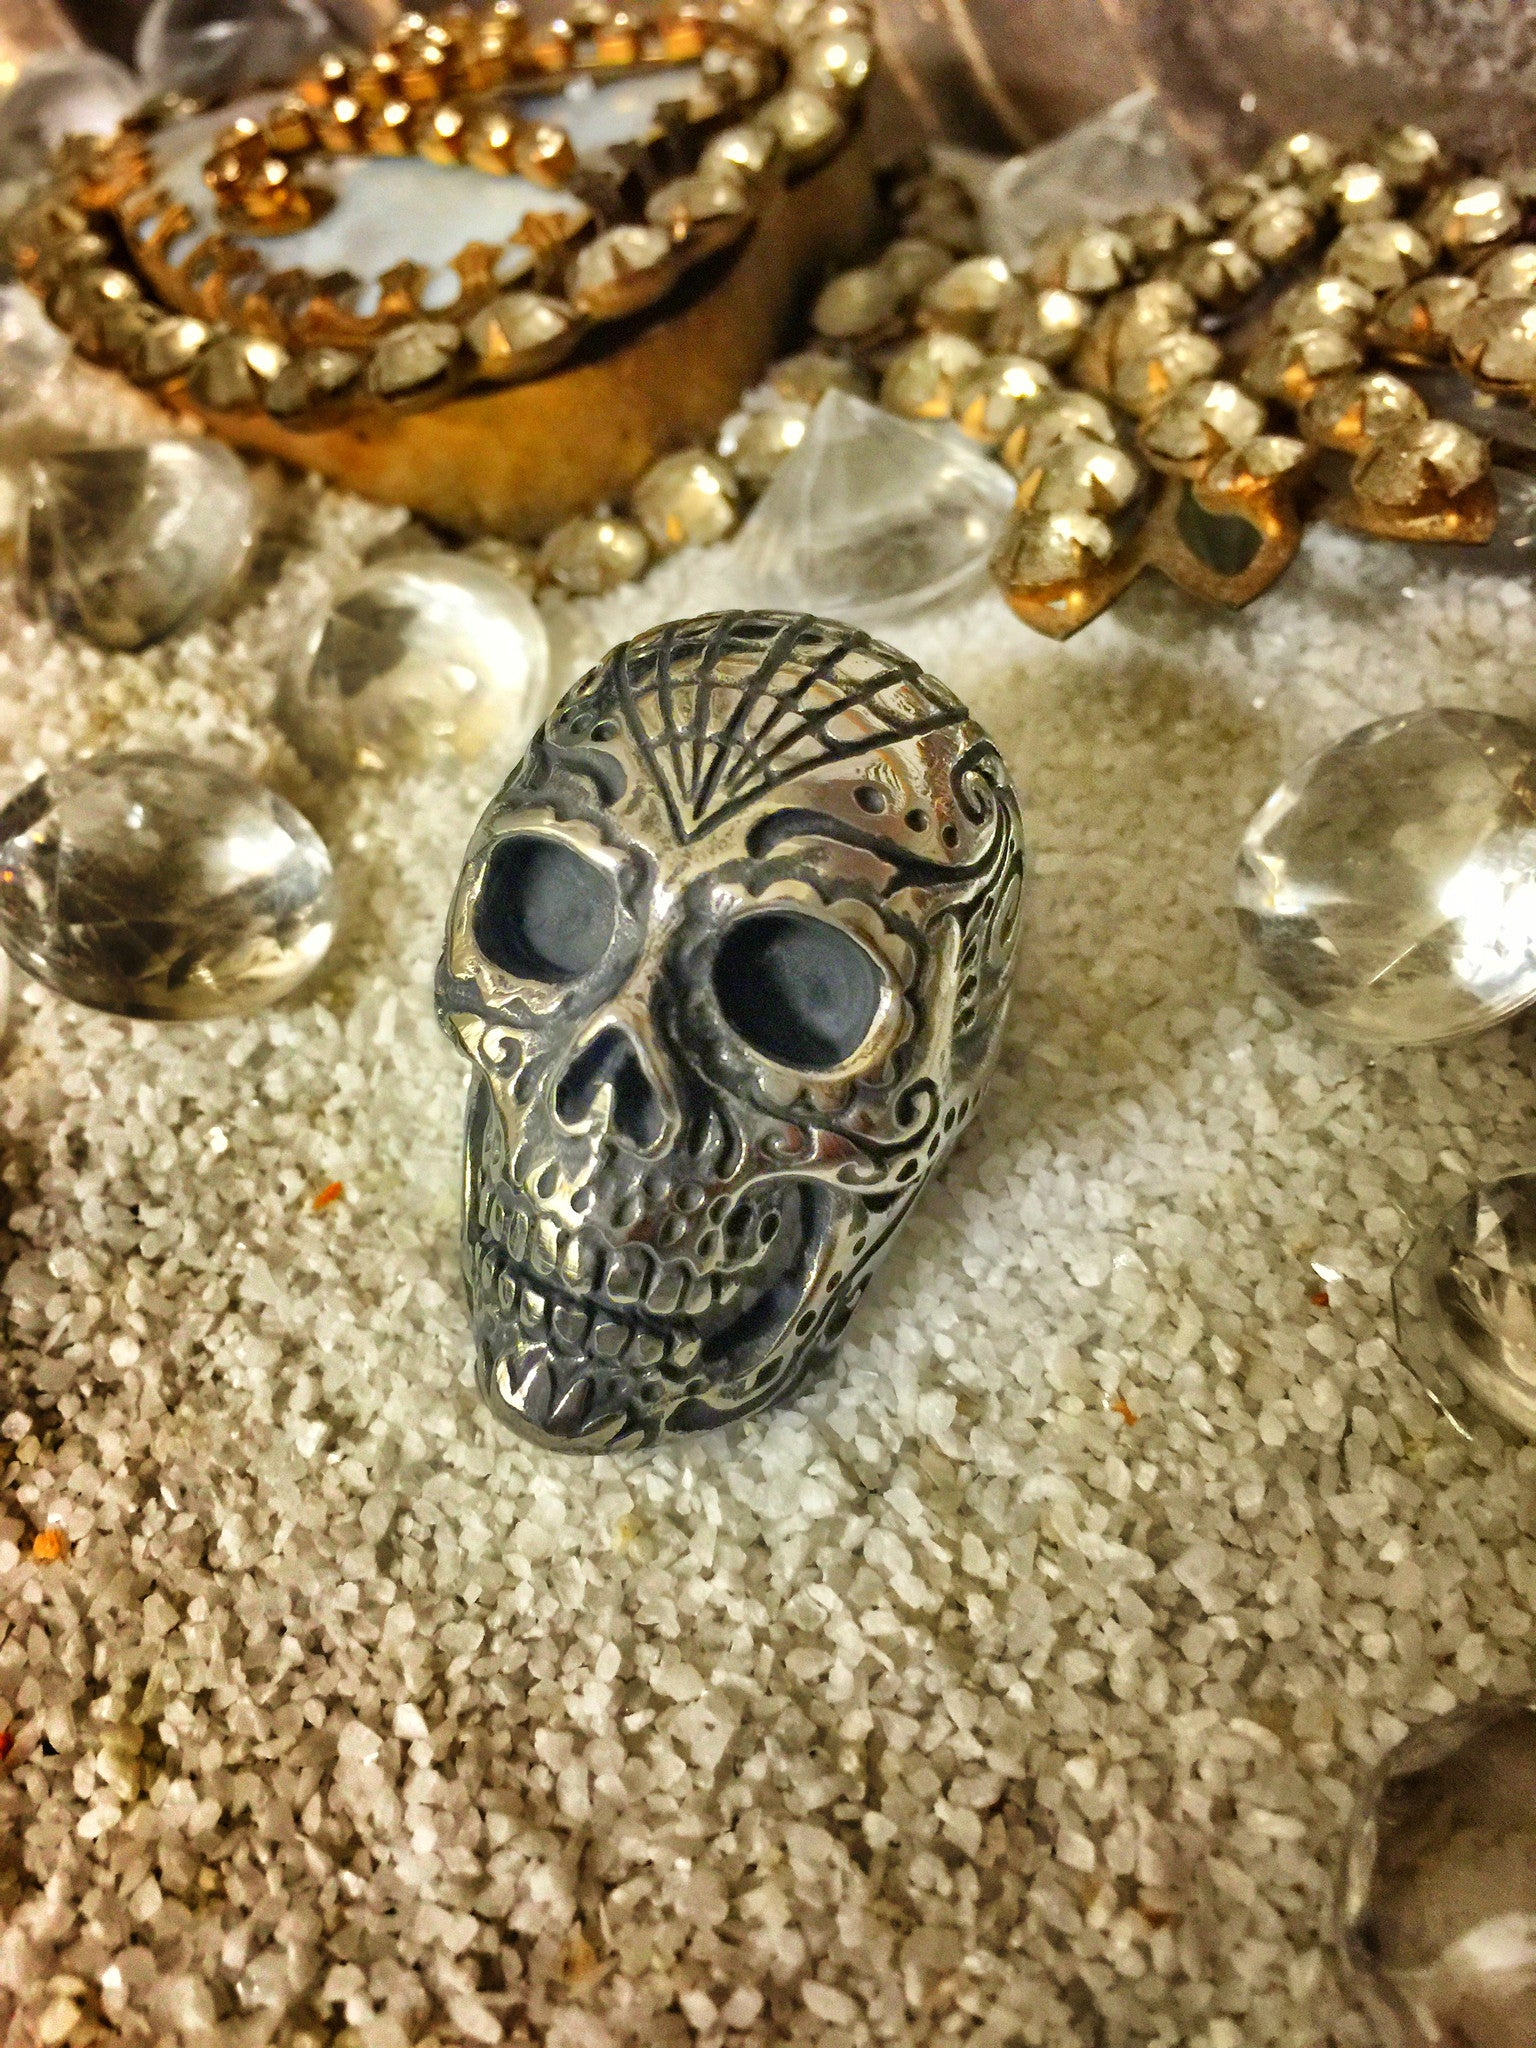 Saint Marc 'Voodoo Child' Massive Skull Ring